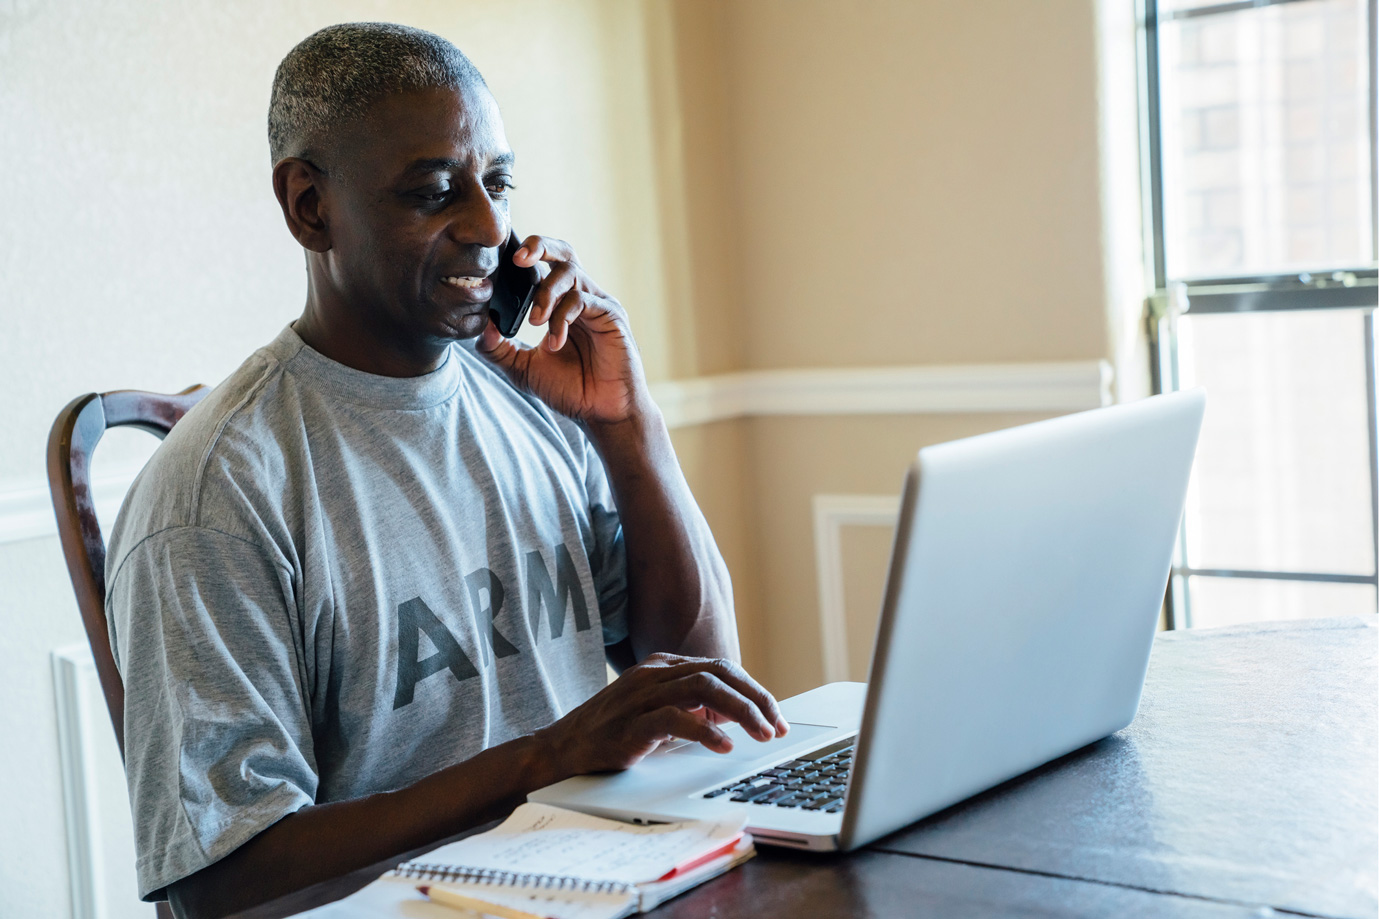 Army veteran on phone and laptop looking for online resources.